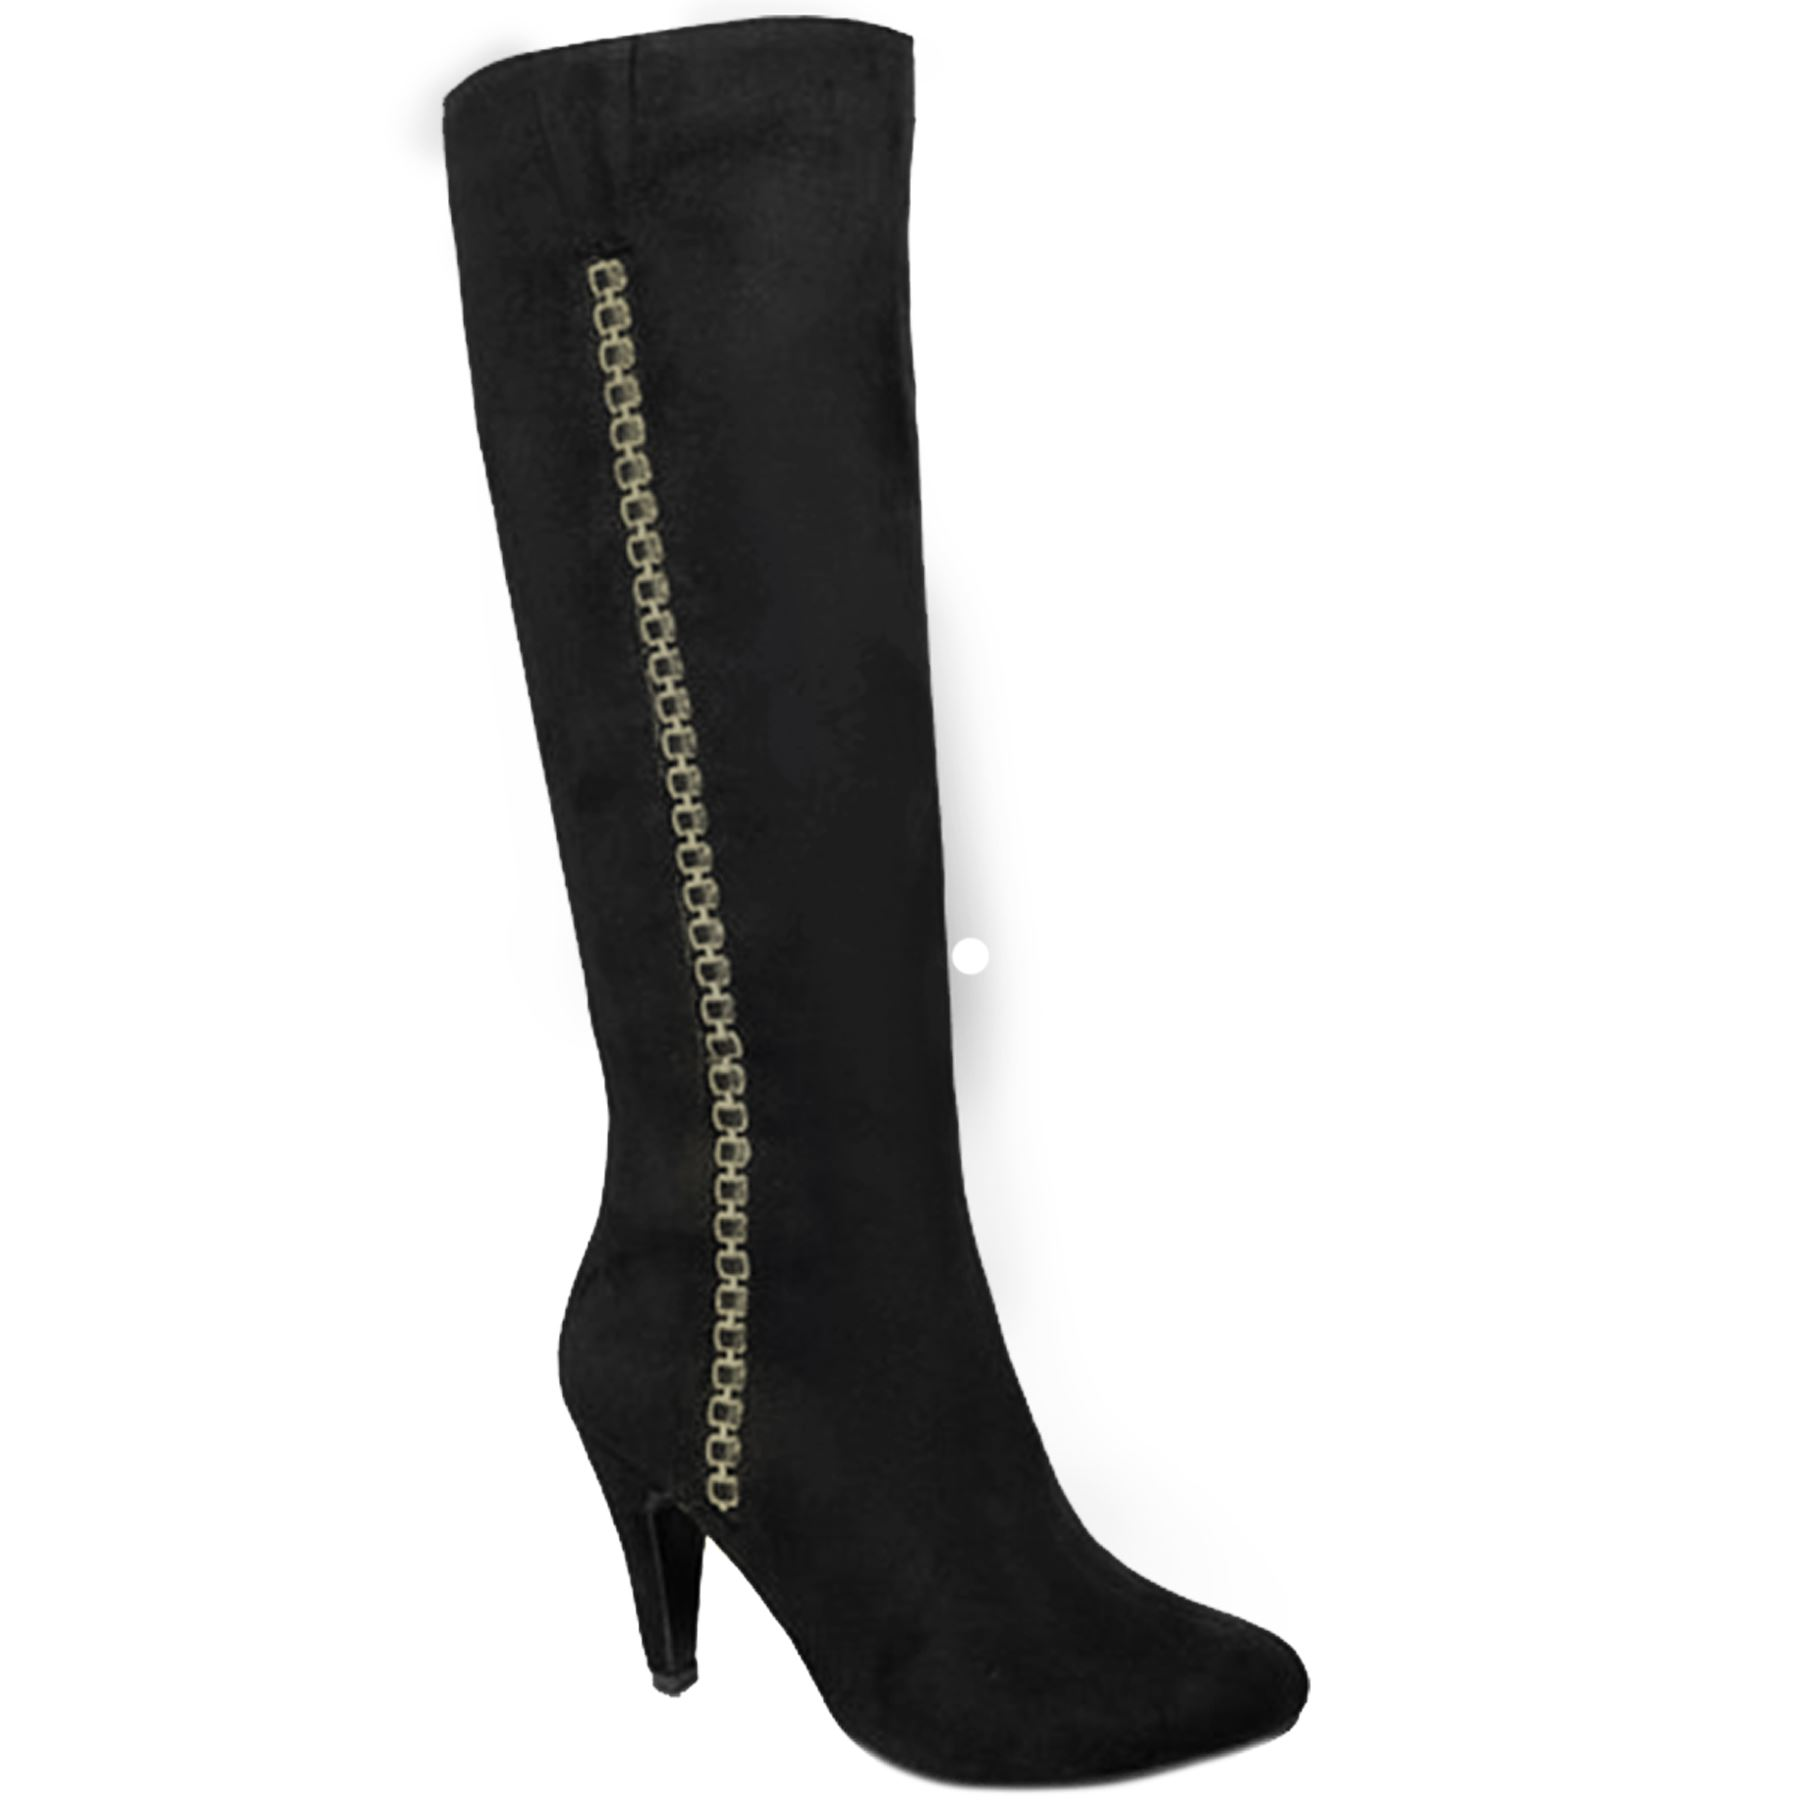 GLC565 Hadley Side Zip Faux Suede Calf High Chain Pointed Toe Heeled Stiefel